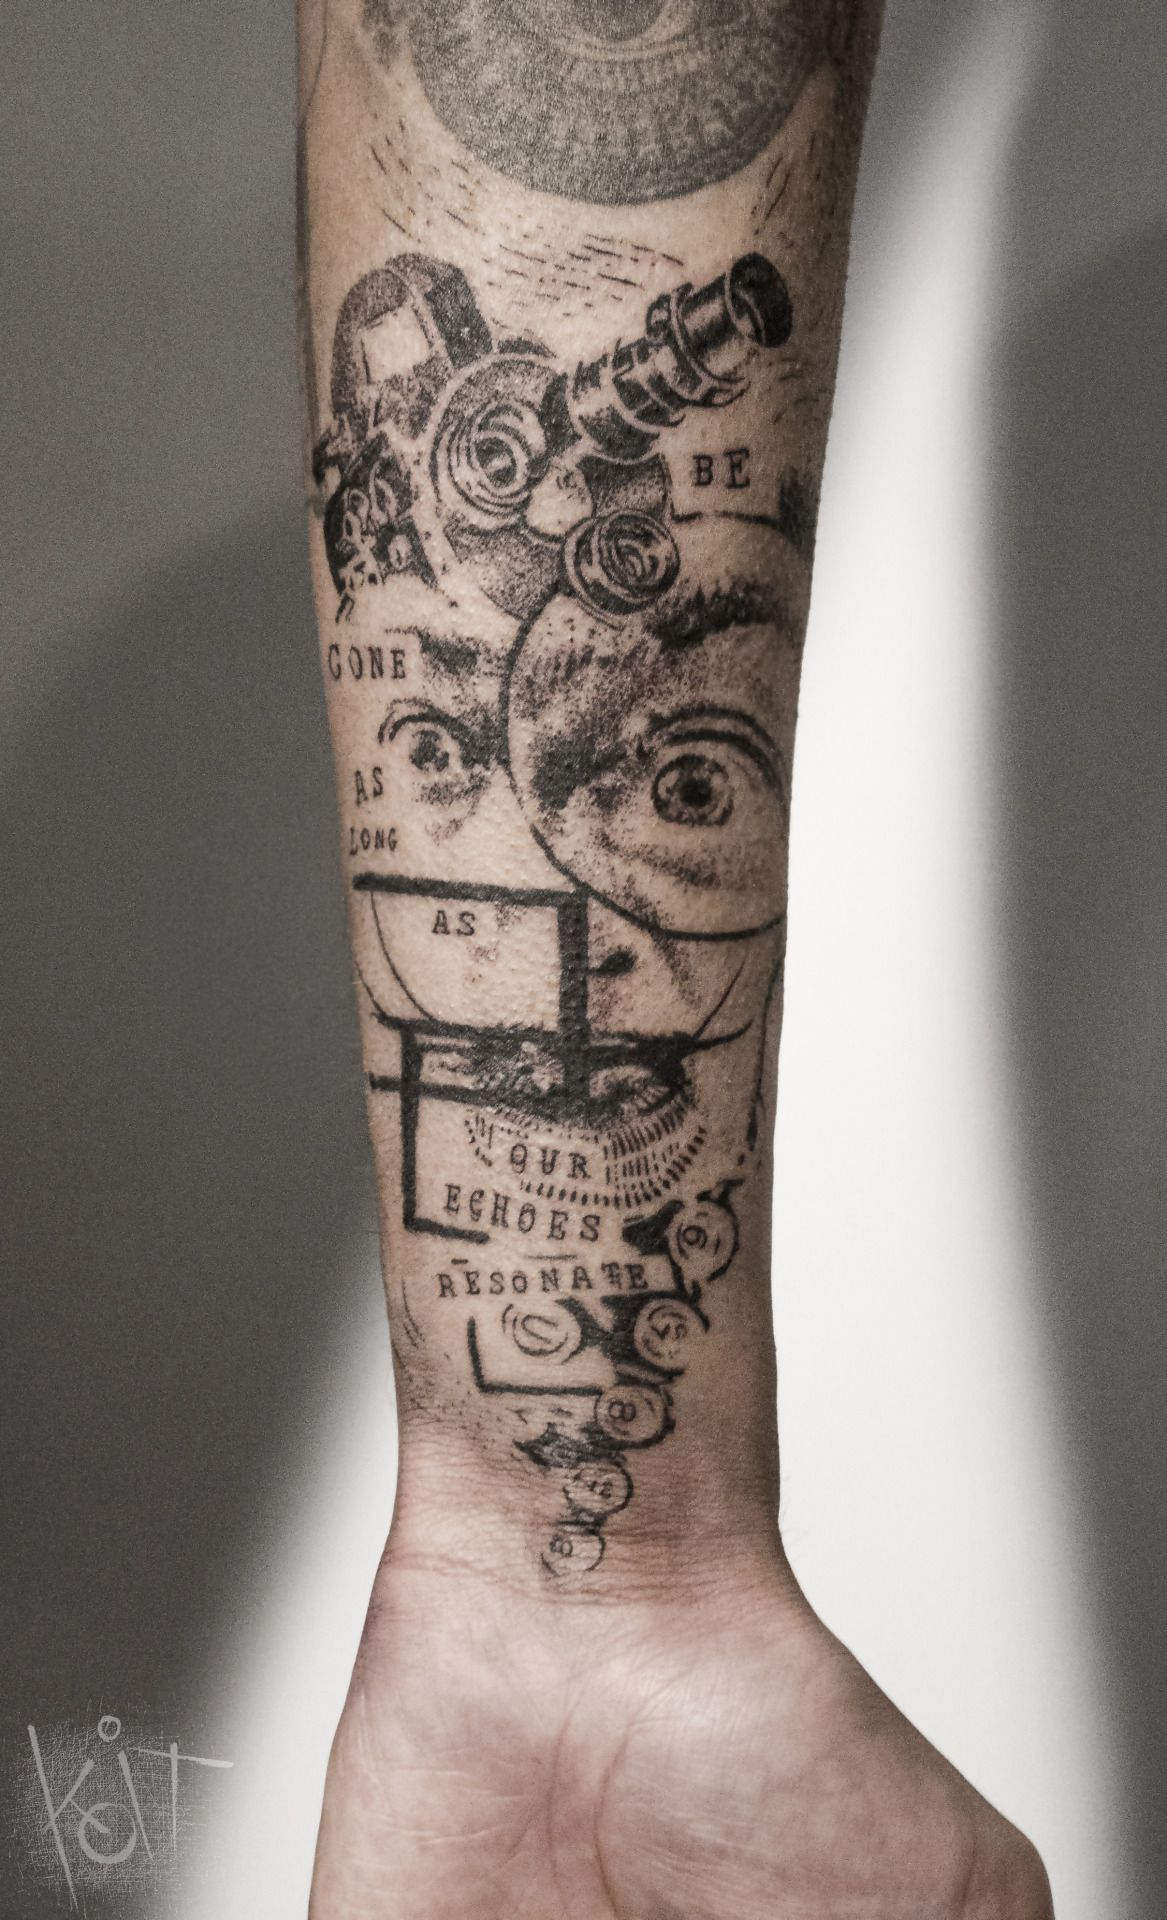 17a9e9fbf Koit Tattoo Berlin. Graphic style forearm black tattoo with a portrait of  Salvador Dali, geometric shapes and quotes. | Inked | Tattoo ideas | Berlin  tattoo ...